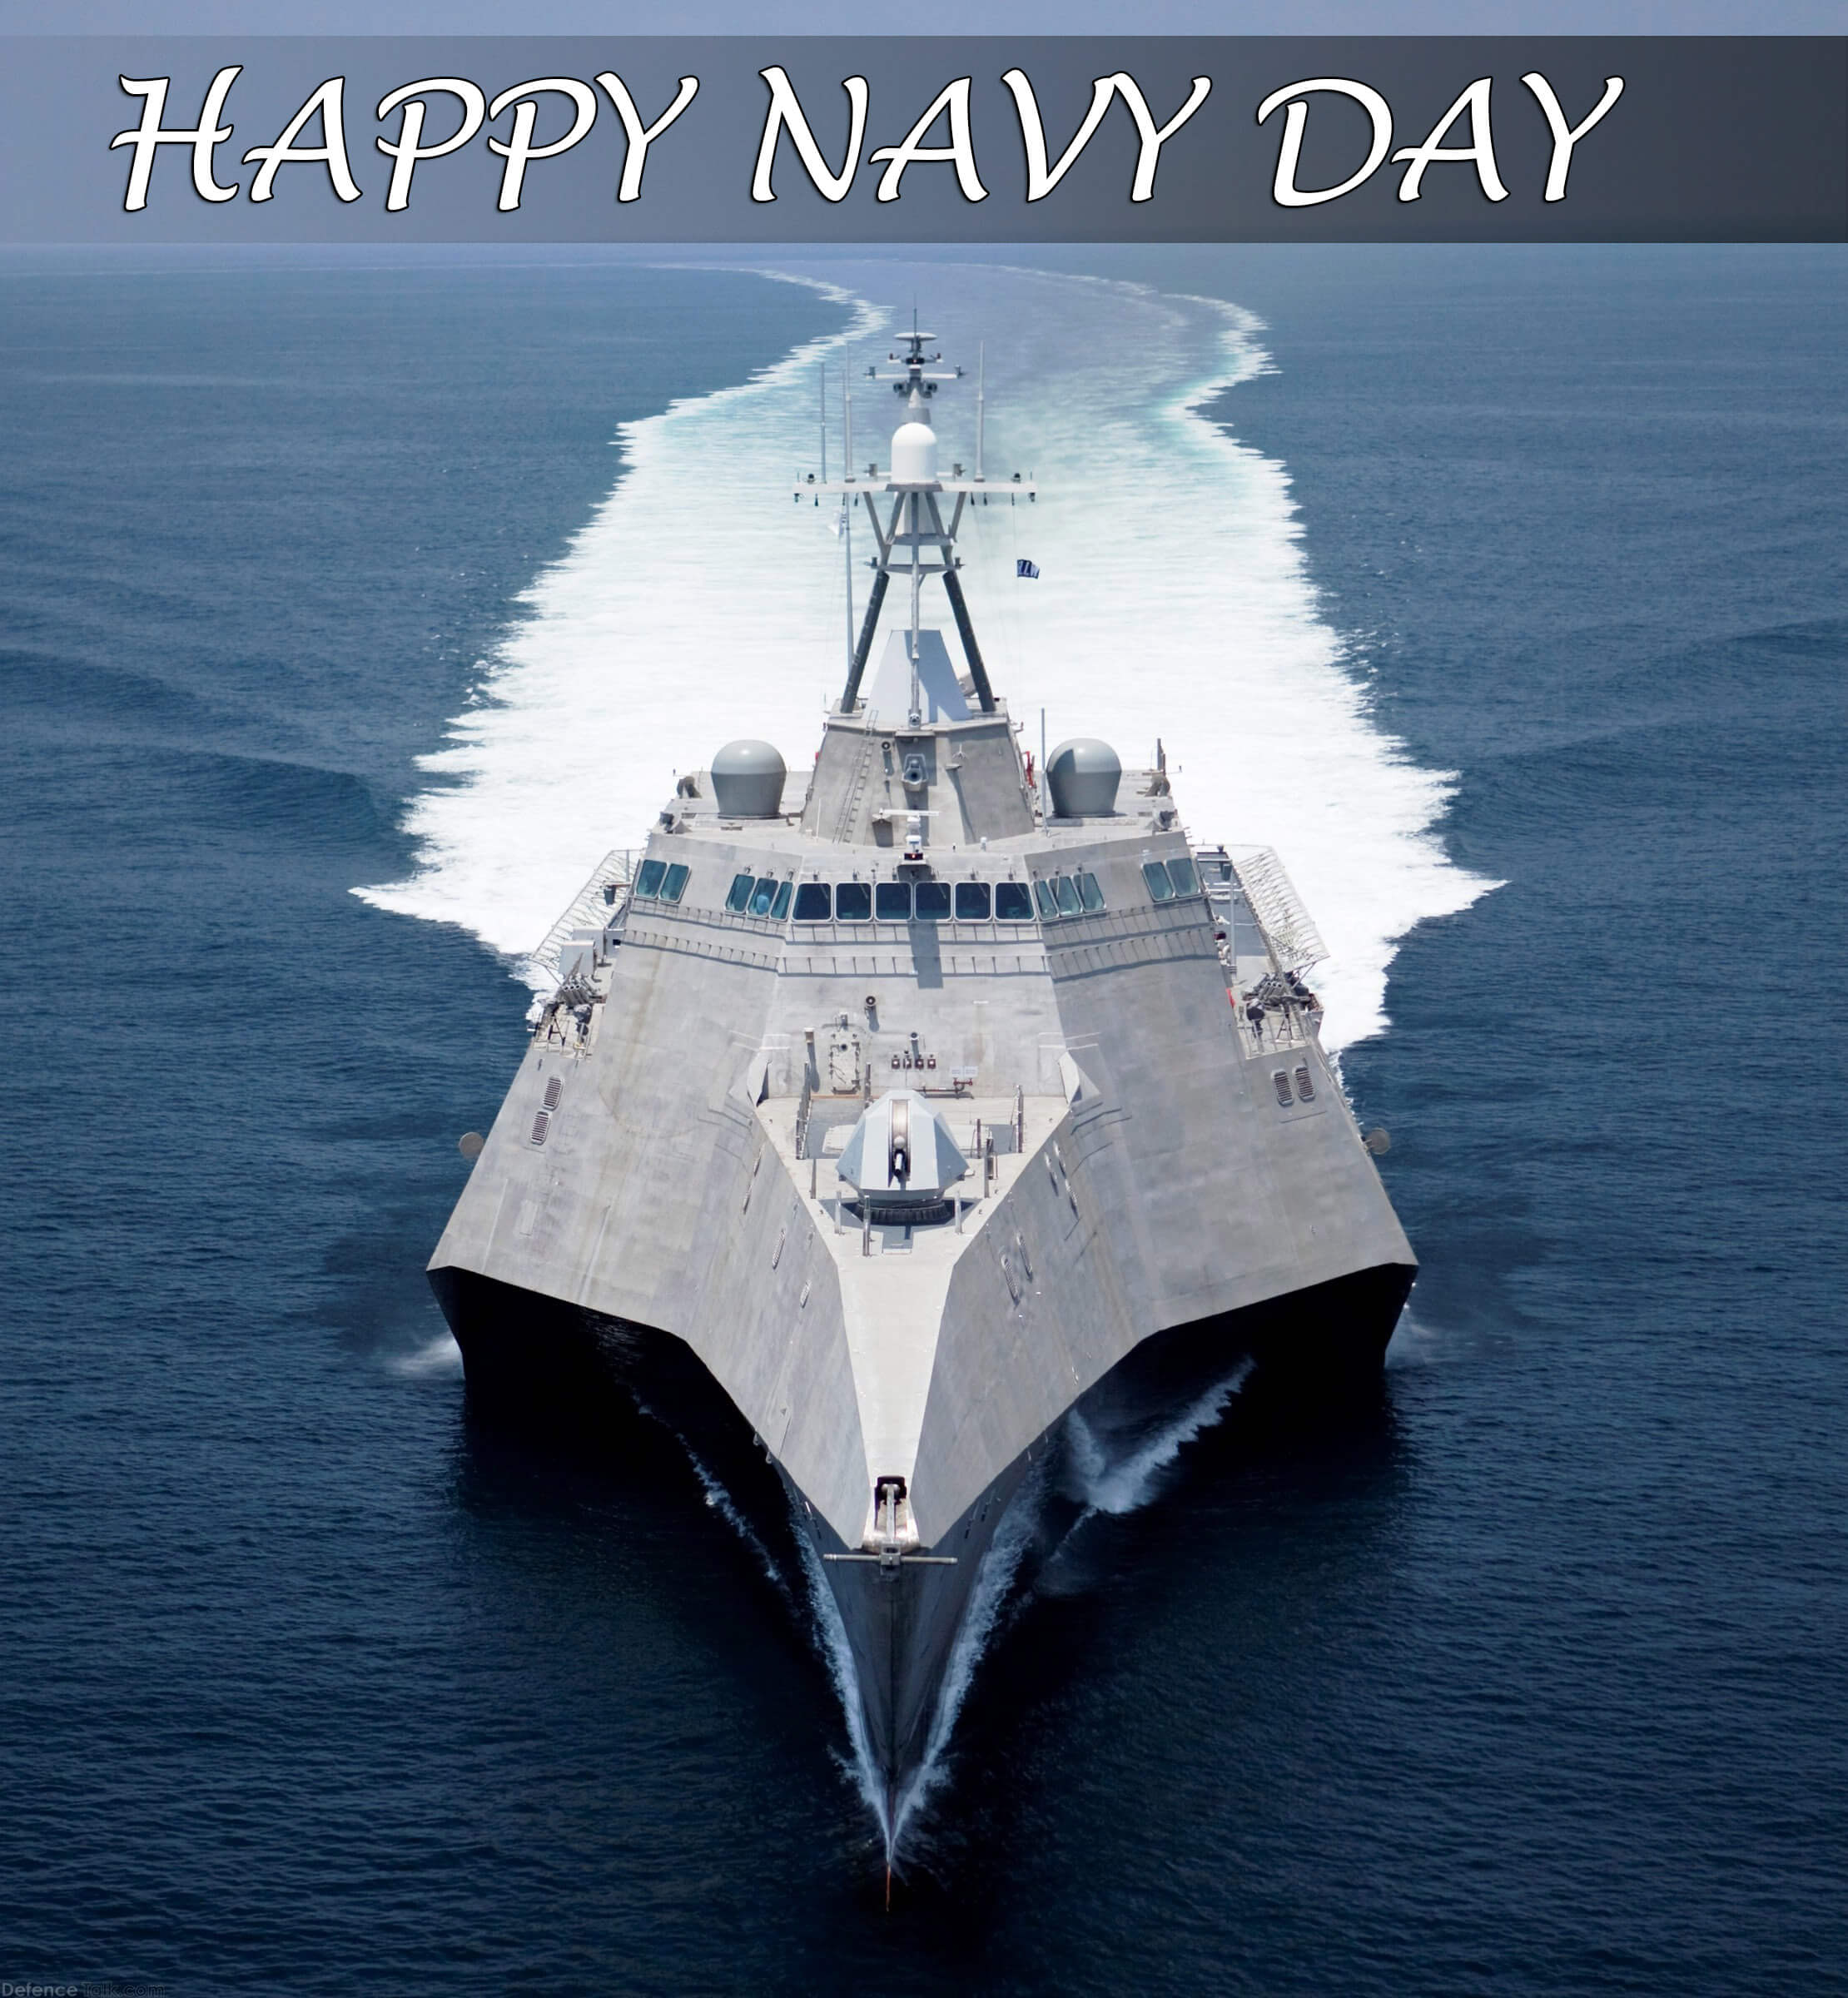 happy navy day ship wishes greetings hd pc wallpaper